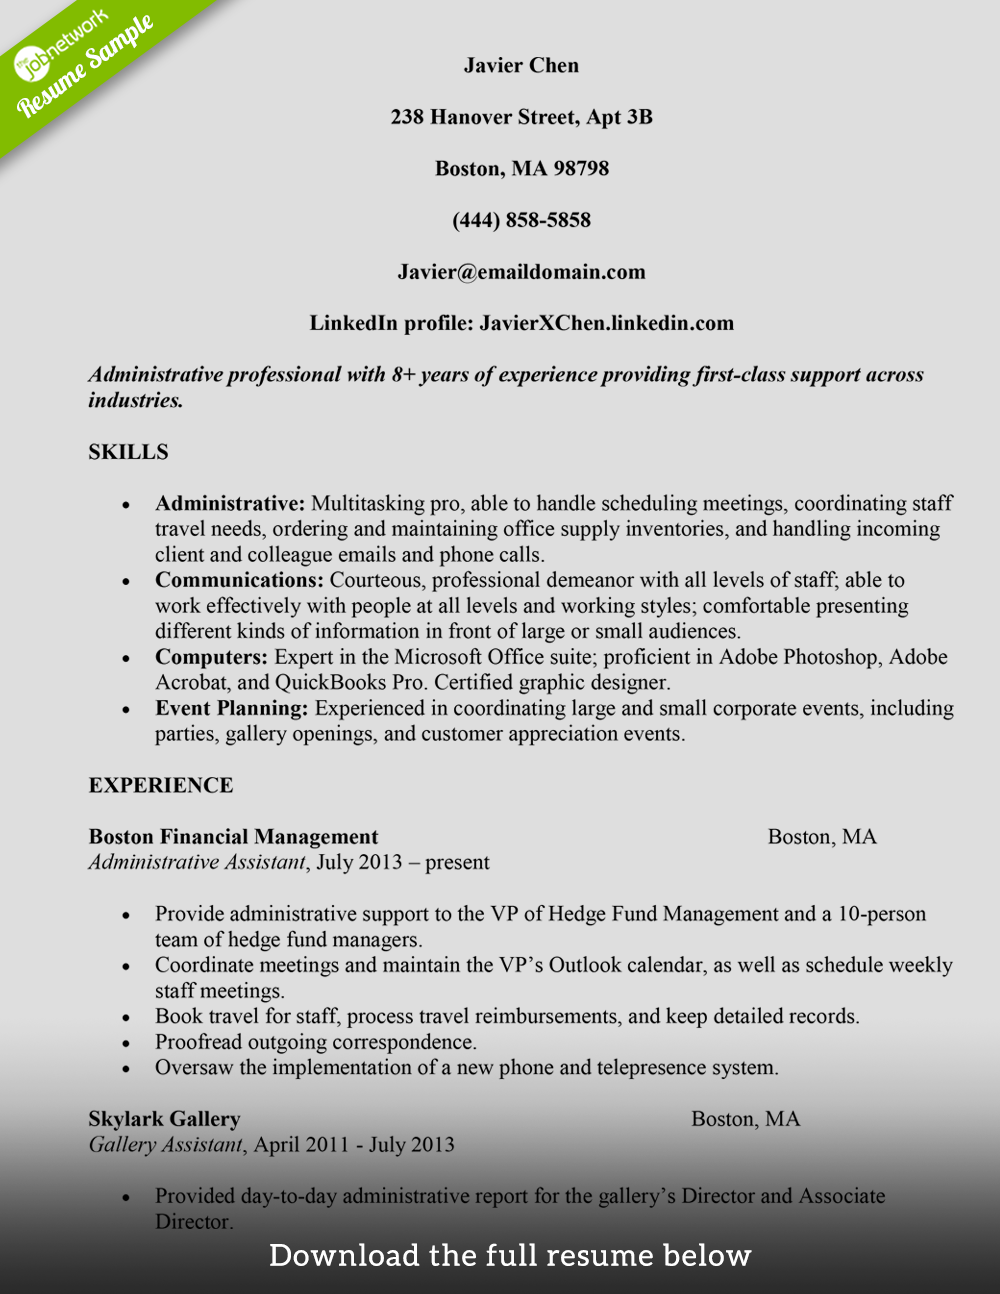 Administrative Assistant Resume Javier Chen  Resume Sample Administrative Assistant